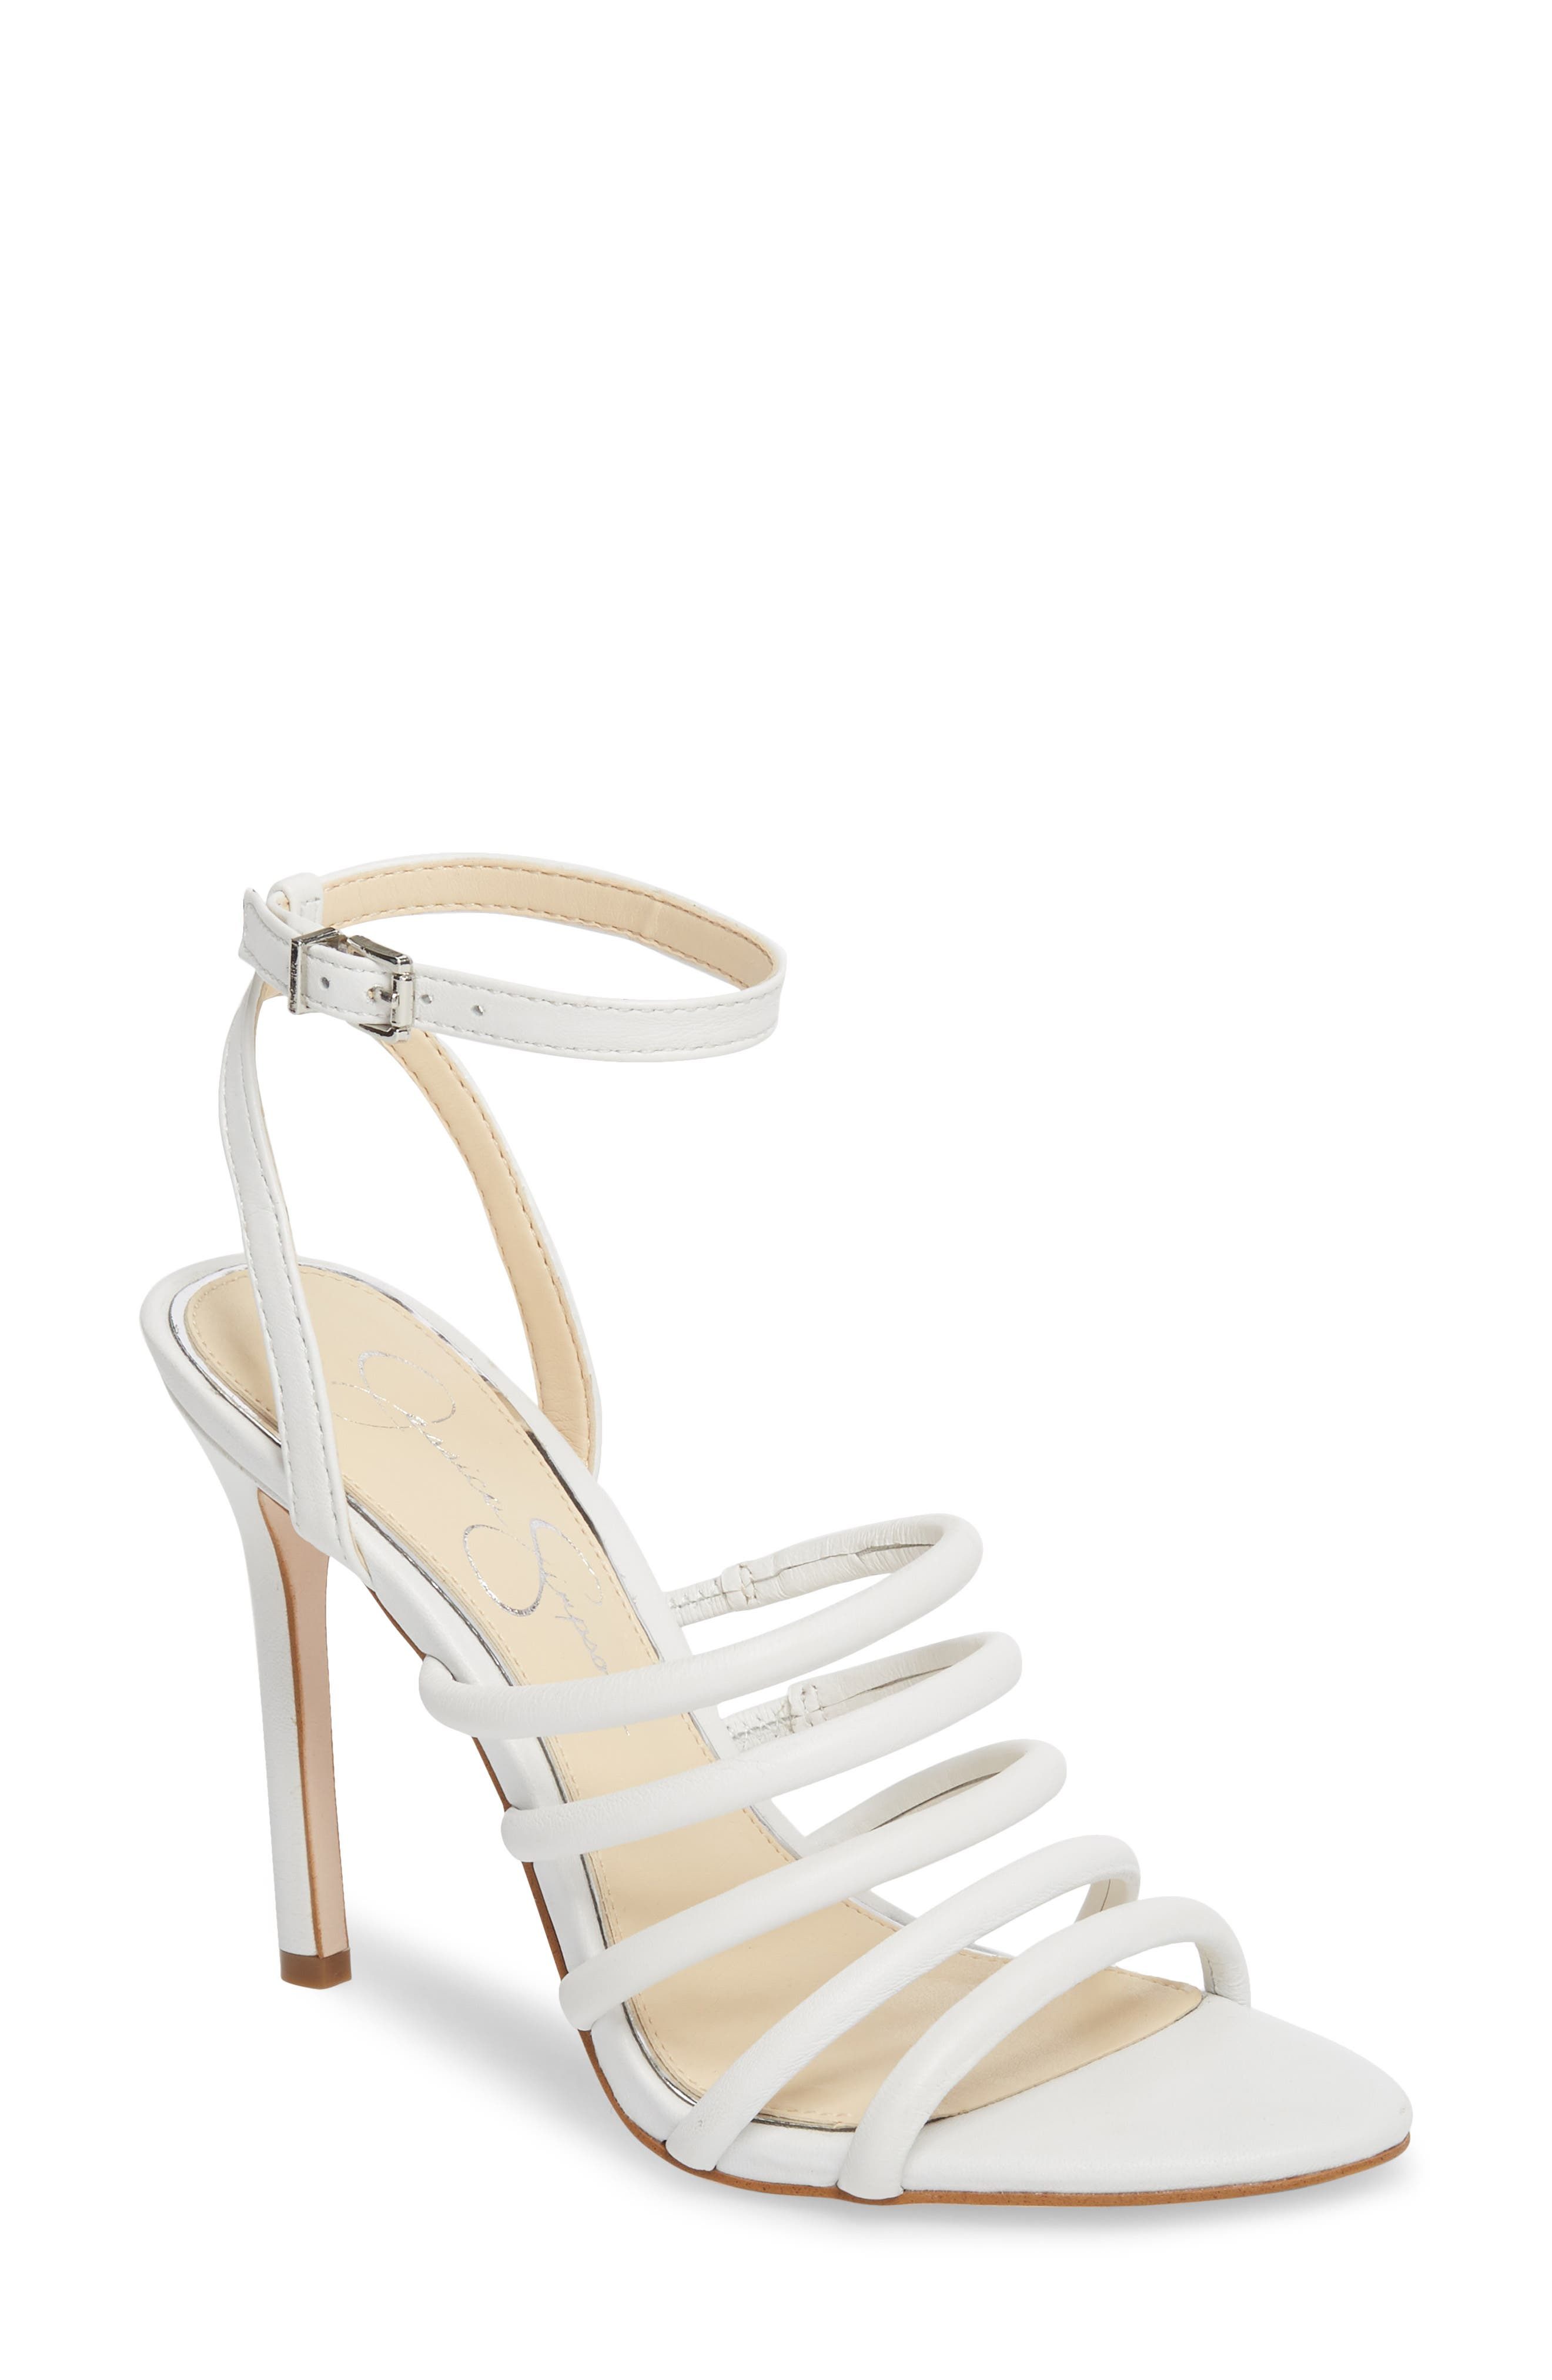 Joselle Strappy Sandal,                             Main thumbnail 2, color,